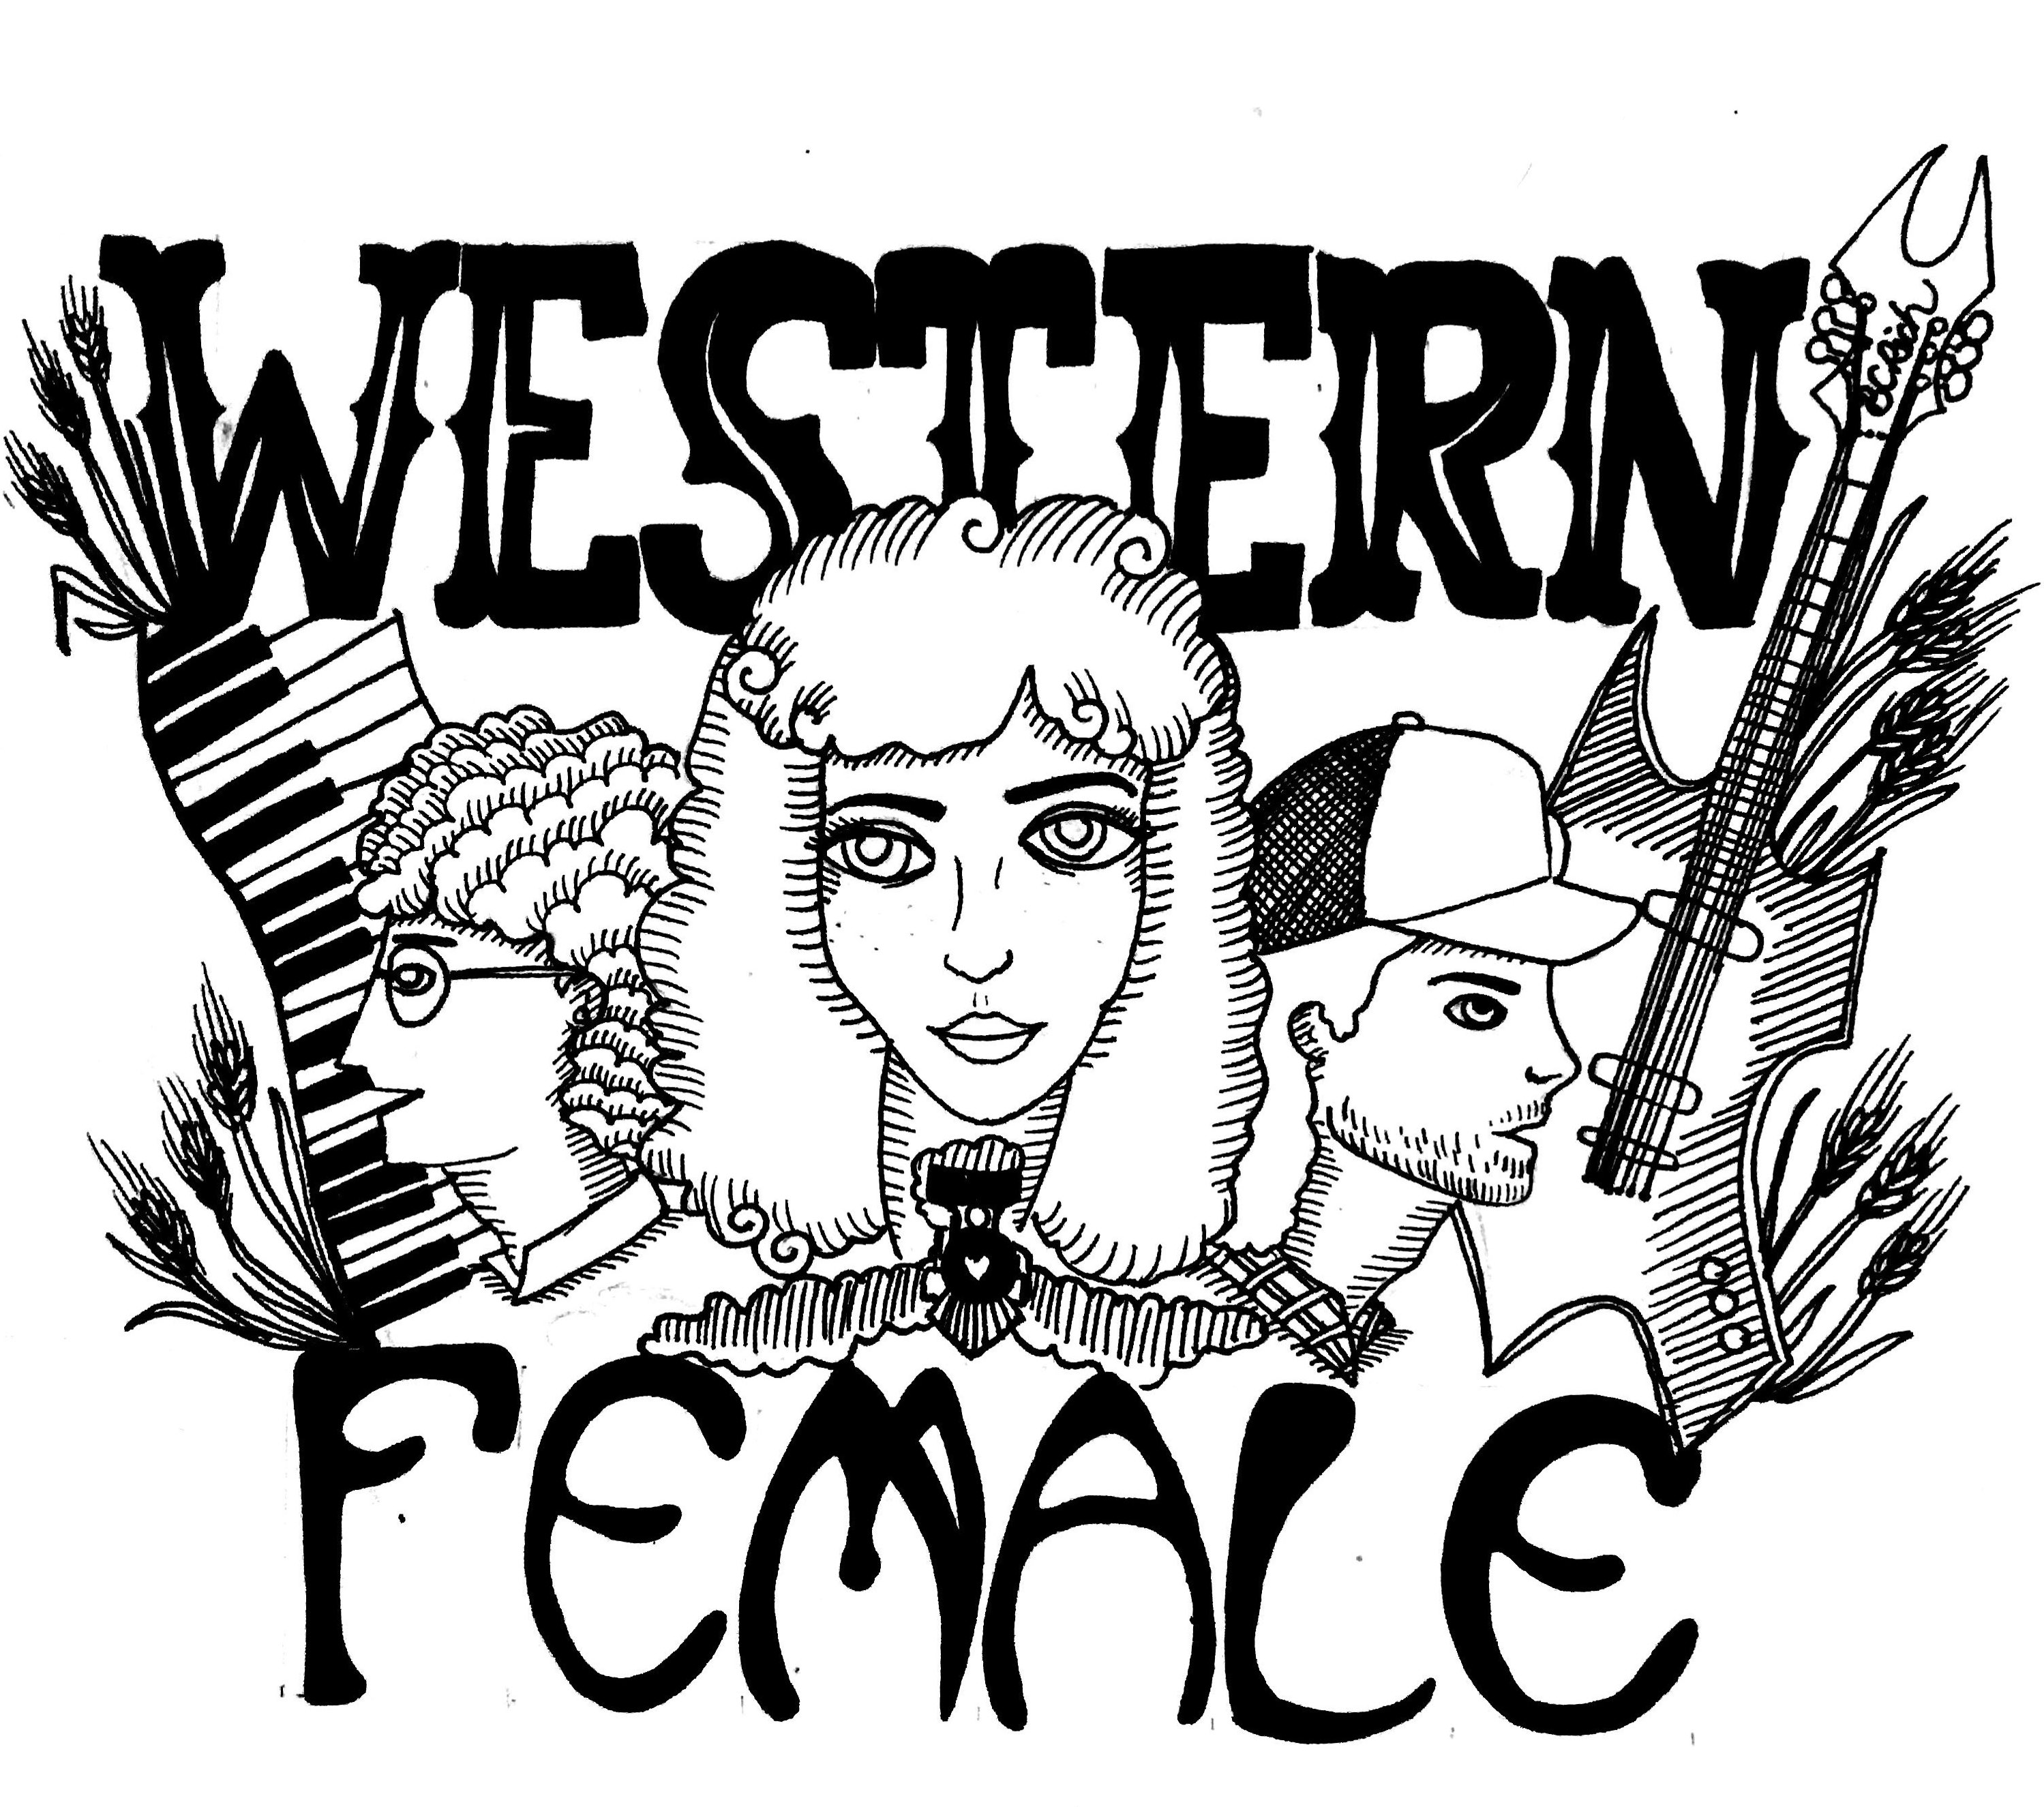 The Triumph Of Western Female | American Standard Time